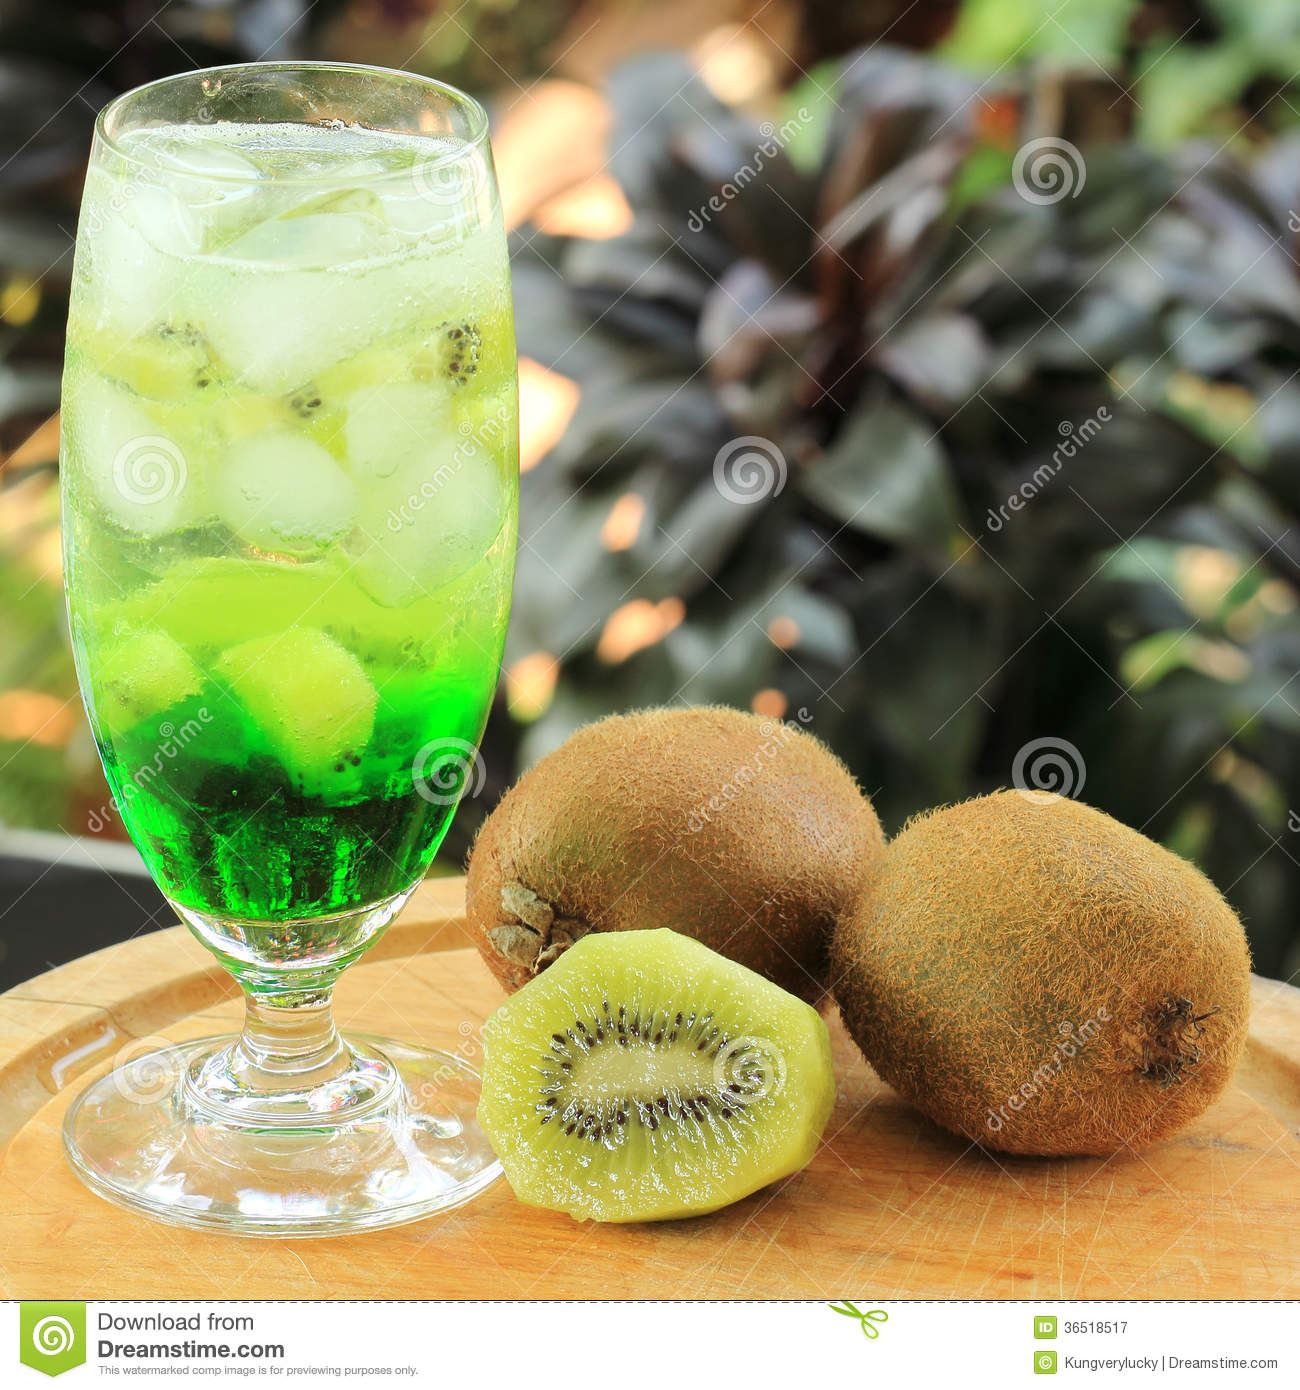 Kiwi juice Soda served with kiwi fruit in afternoon.